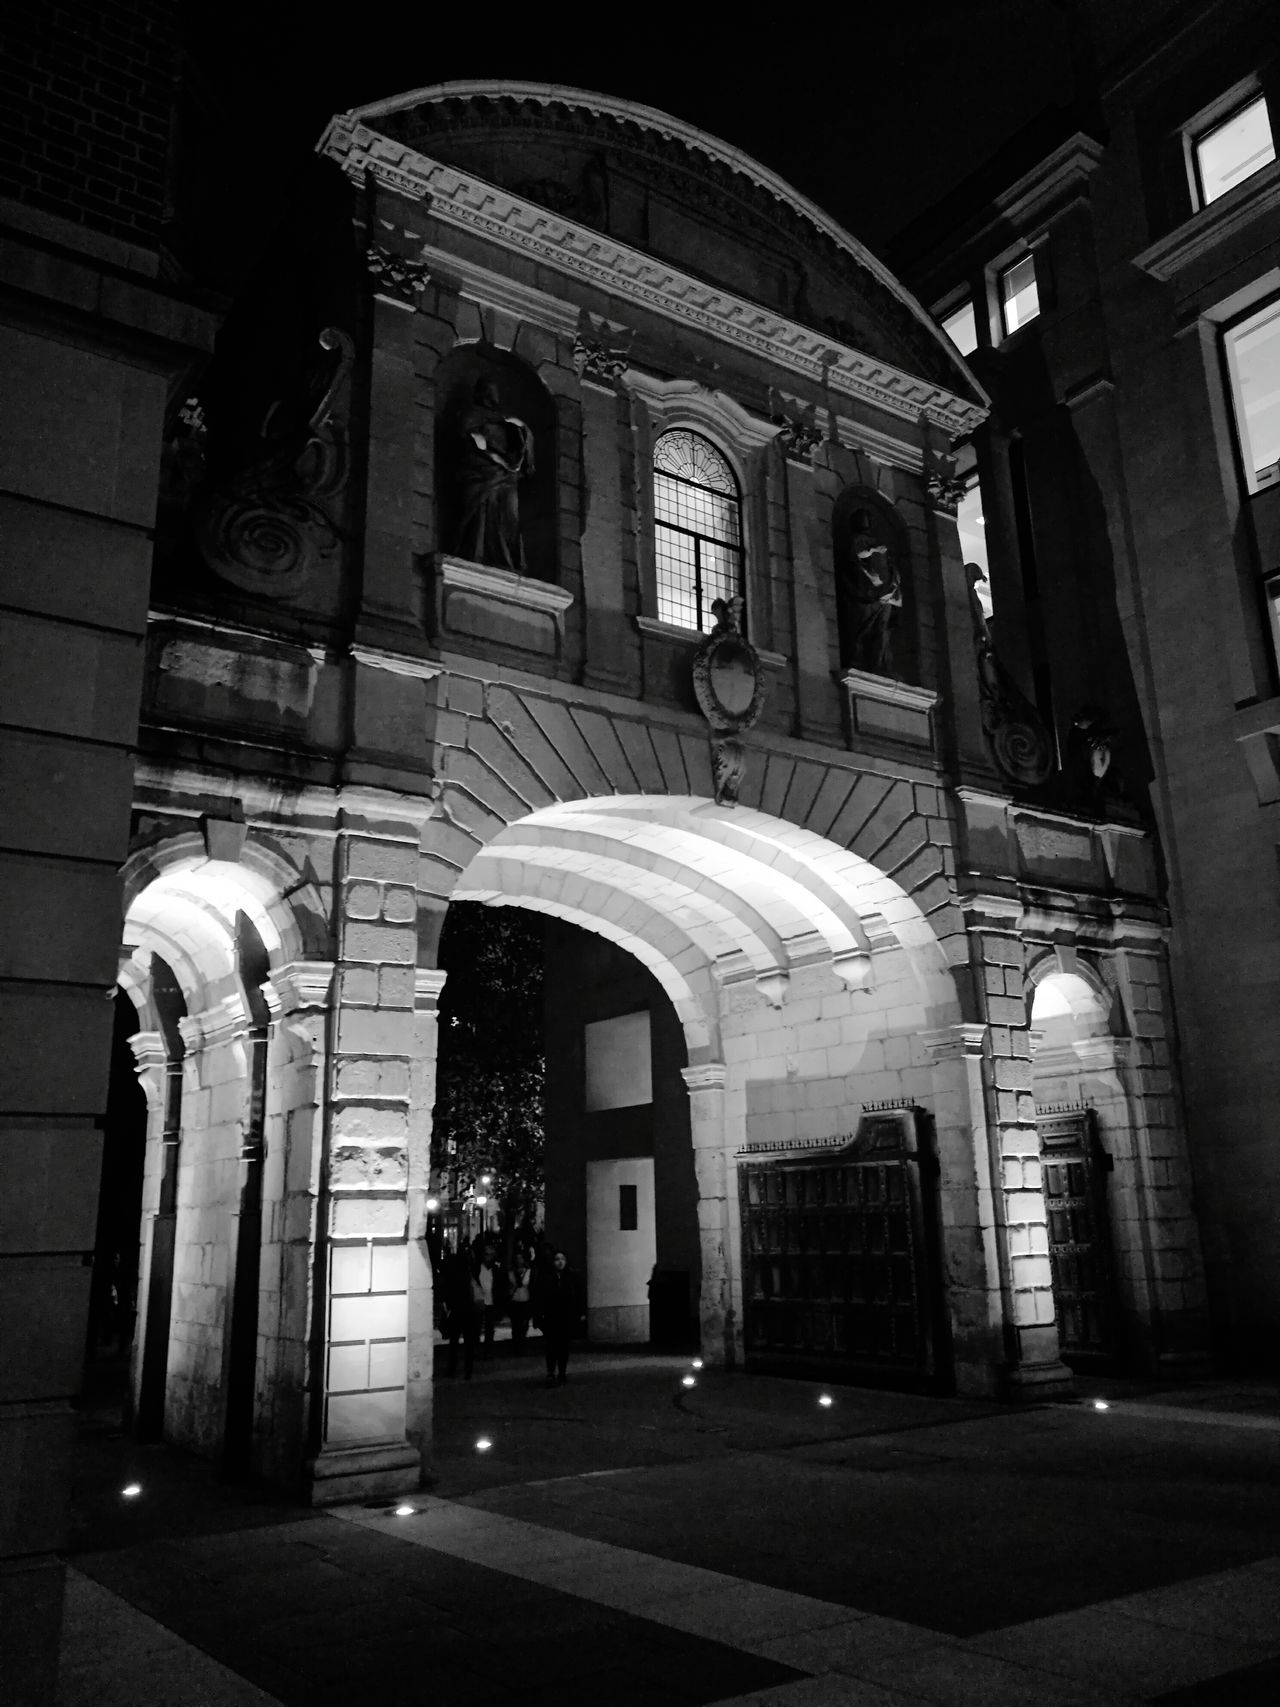 Huwaei Photography London Life LONDON❤ Visitlondonofficial Cityoflondon Building Cityscapes City London Lifestyle London Paternoster Square B&w Blackandwhite Architecture_bw London Photography Paternostersquare London Tourism City Of London Tourism Matt Hollick Silhouettes Of A City Silhouette